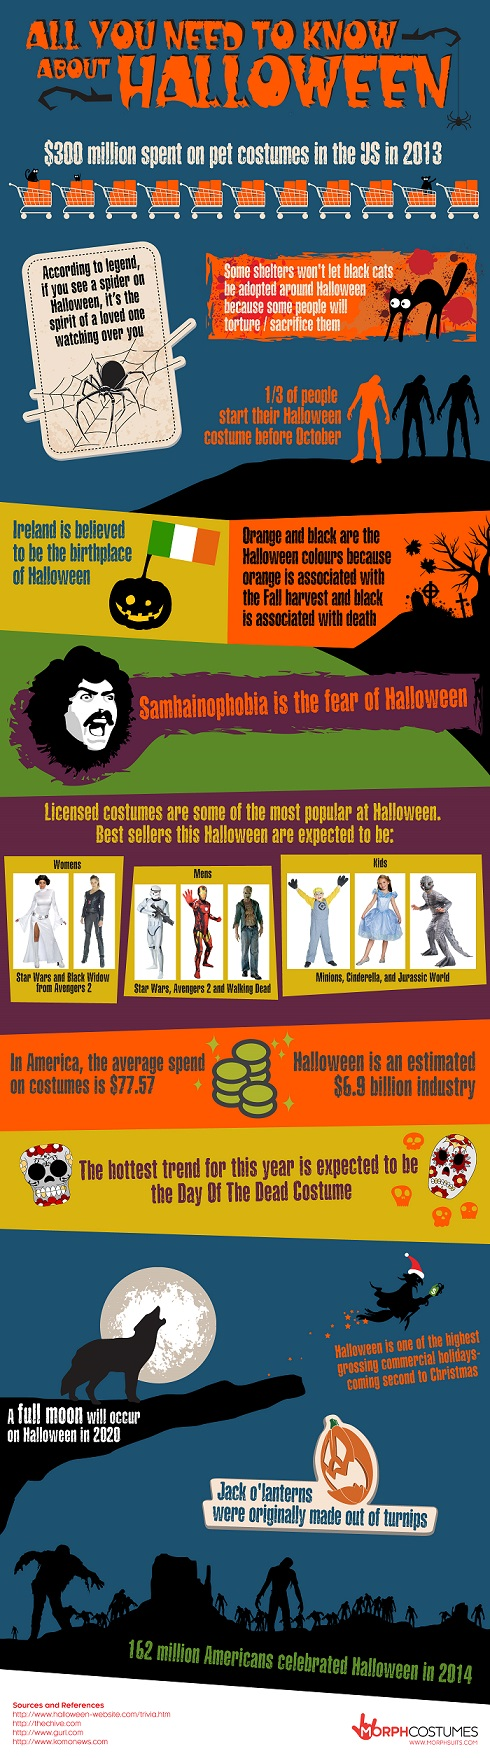 FINAL-Halloween-info-graphic-US